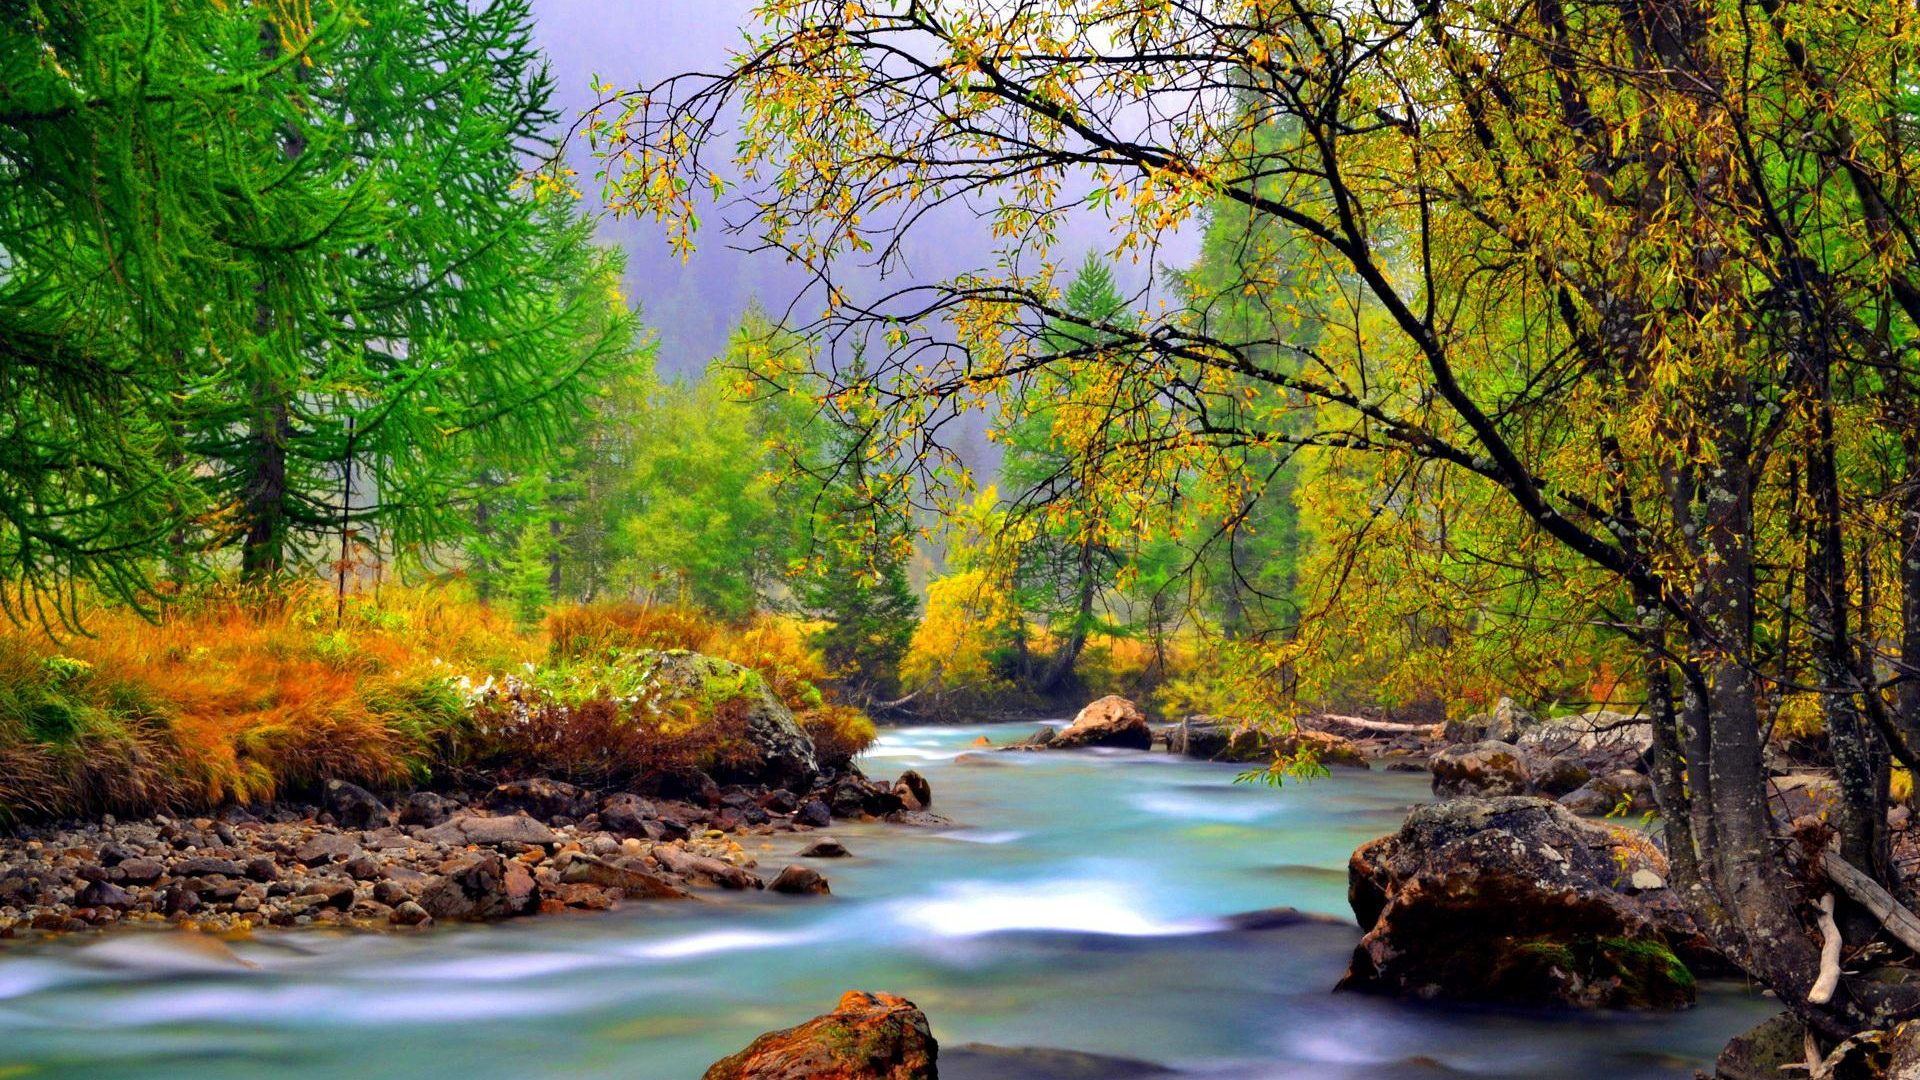 Animated Wallpaper For Tablet Mountain River With Rocks Rocks Yellowed Grass Evergreen